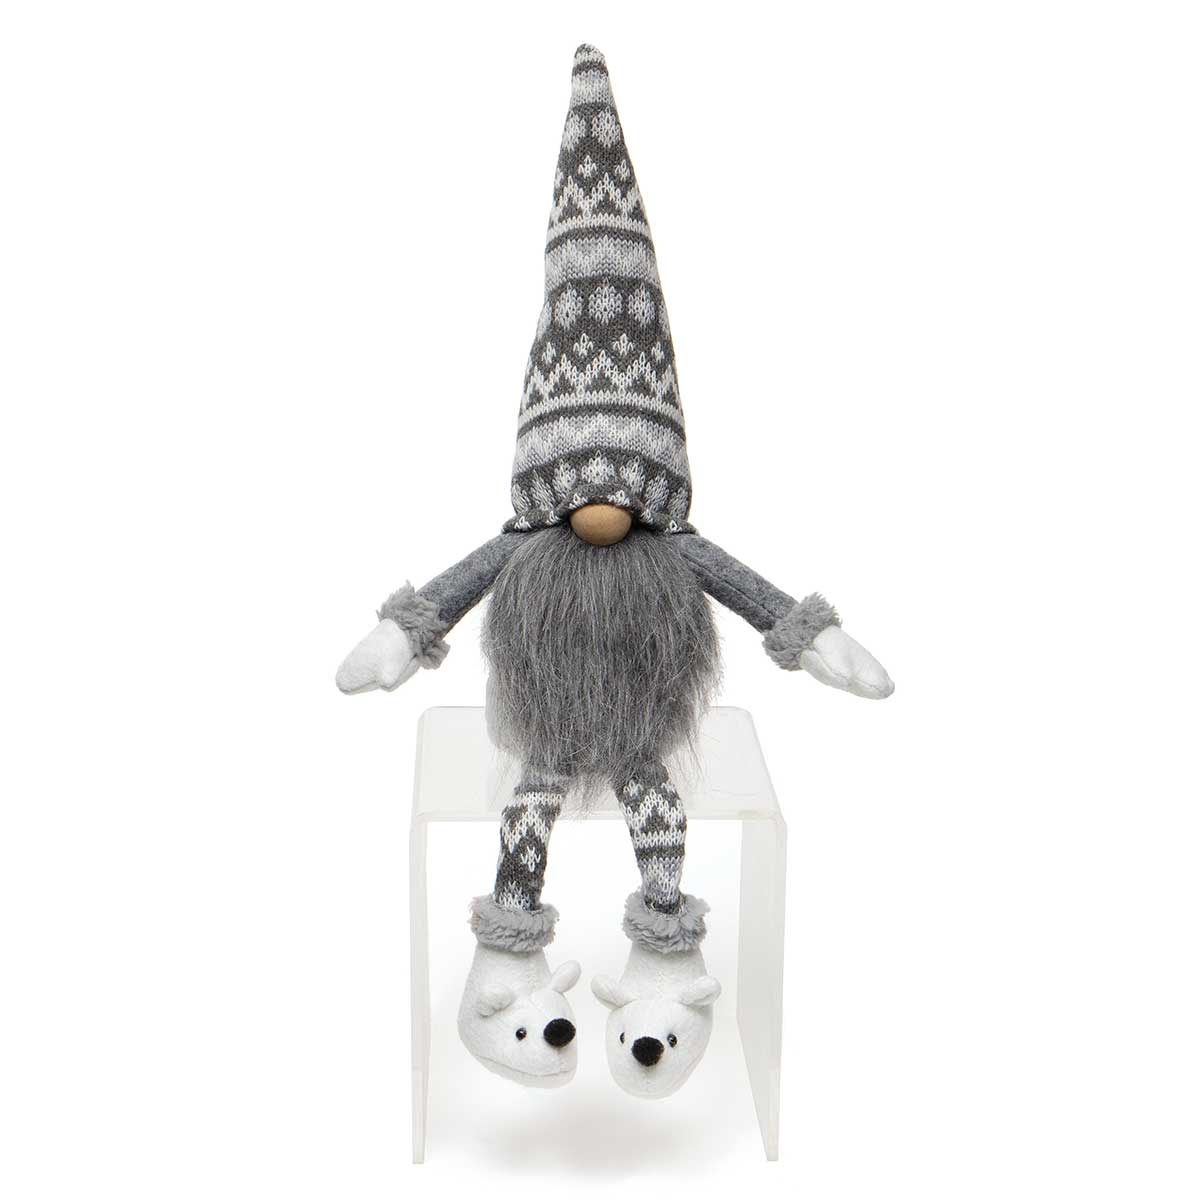 POLI BEAR GNOME GREY/WHITE WITH WIRED SWEATER HAT